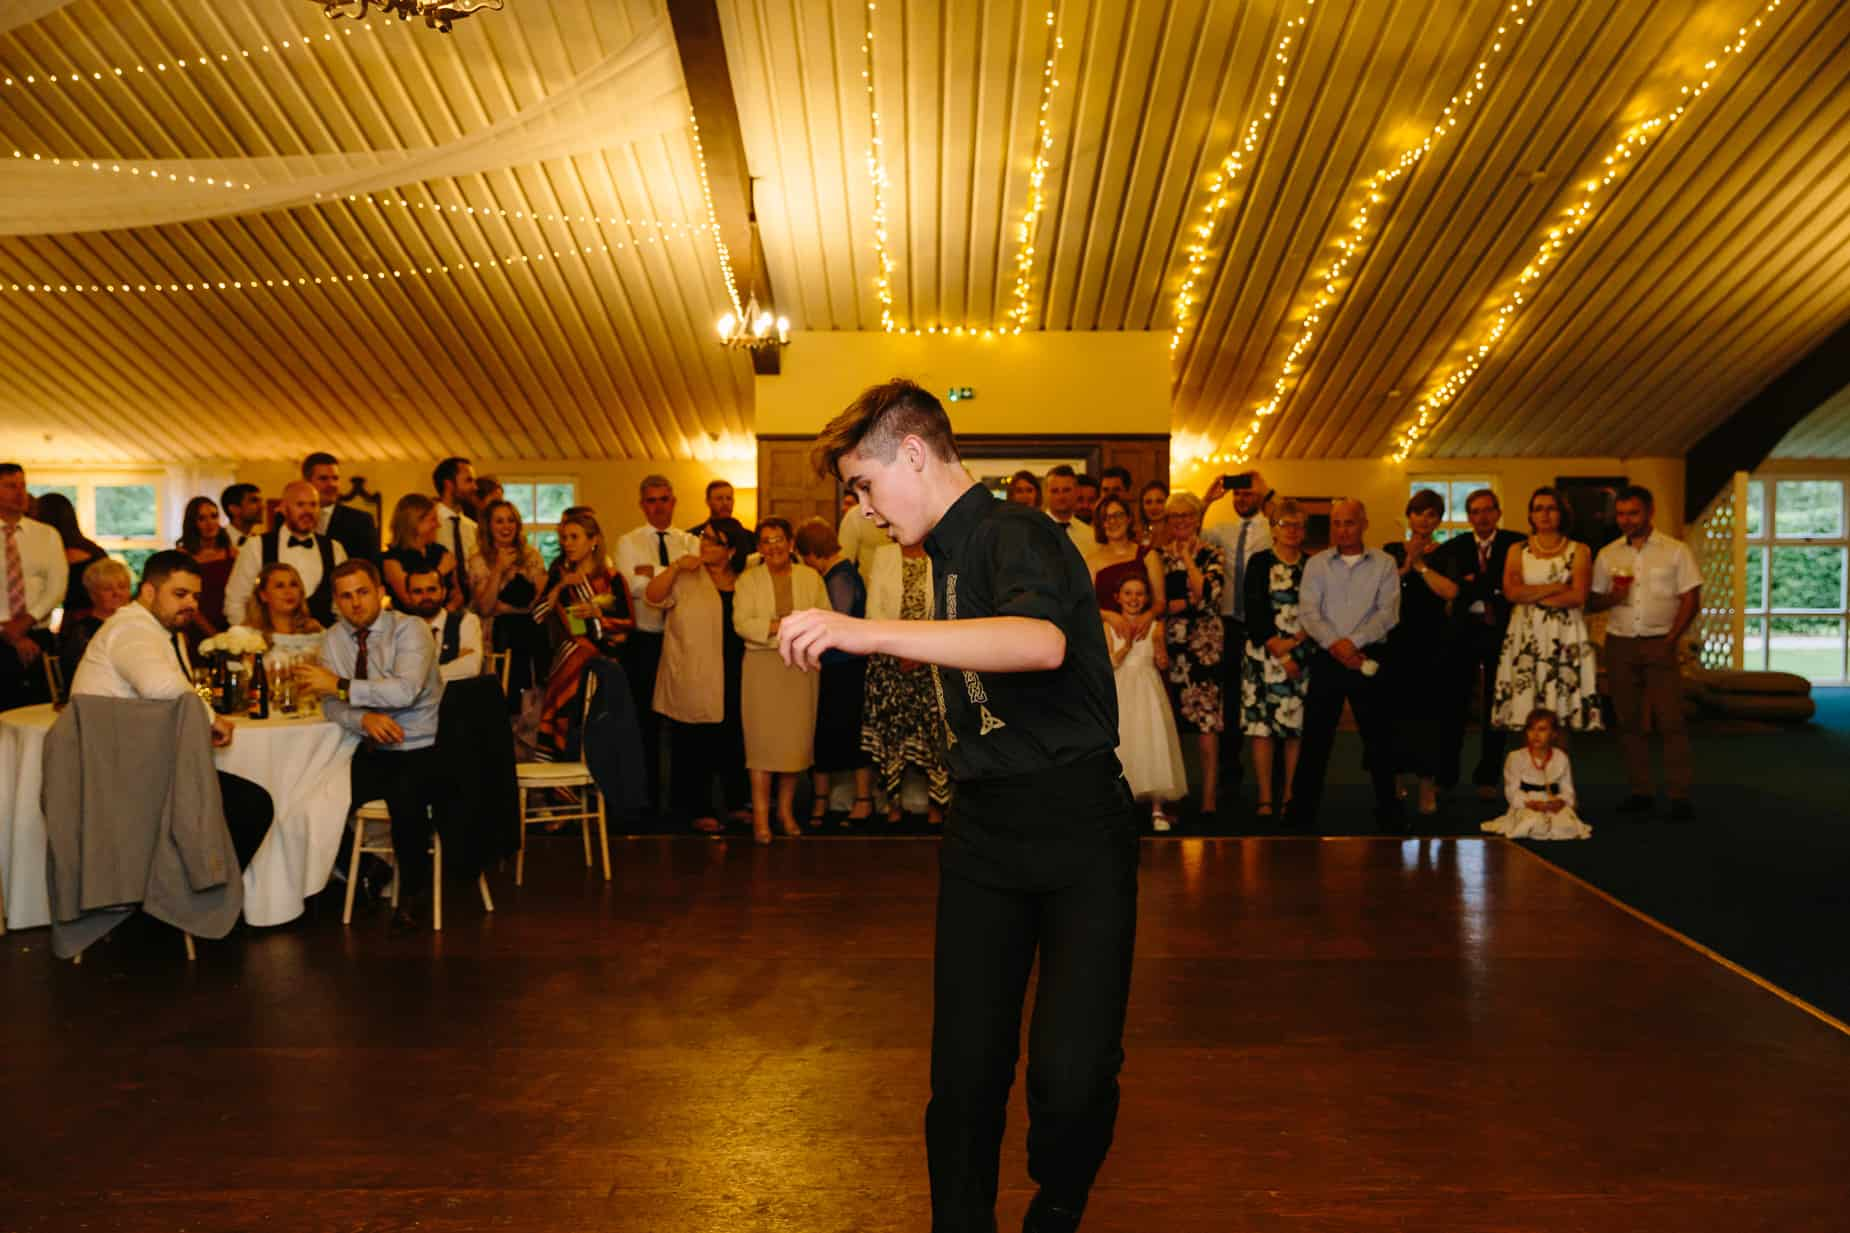 male Irish dancer dancing at wedding with guests watching